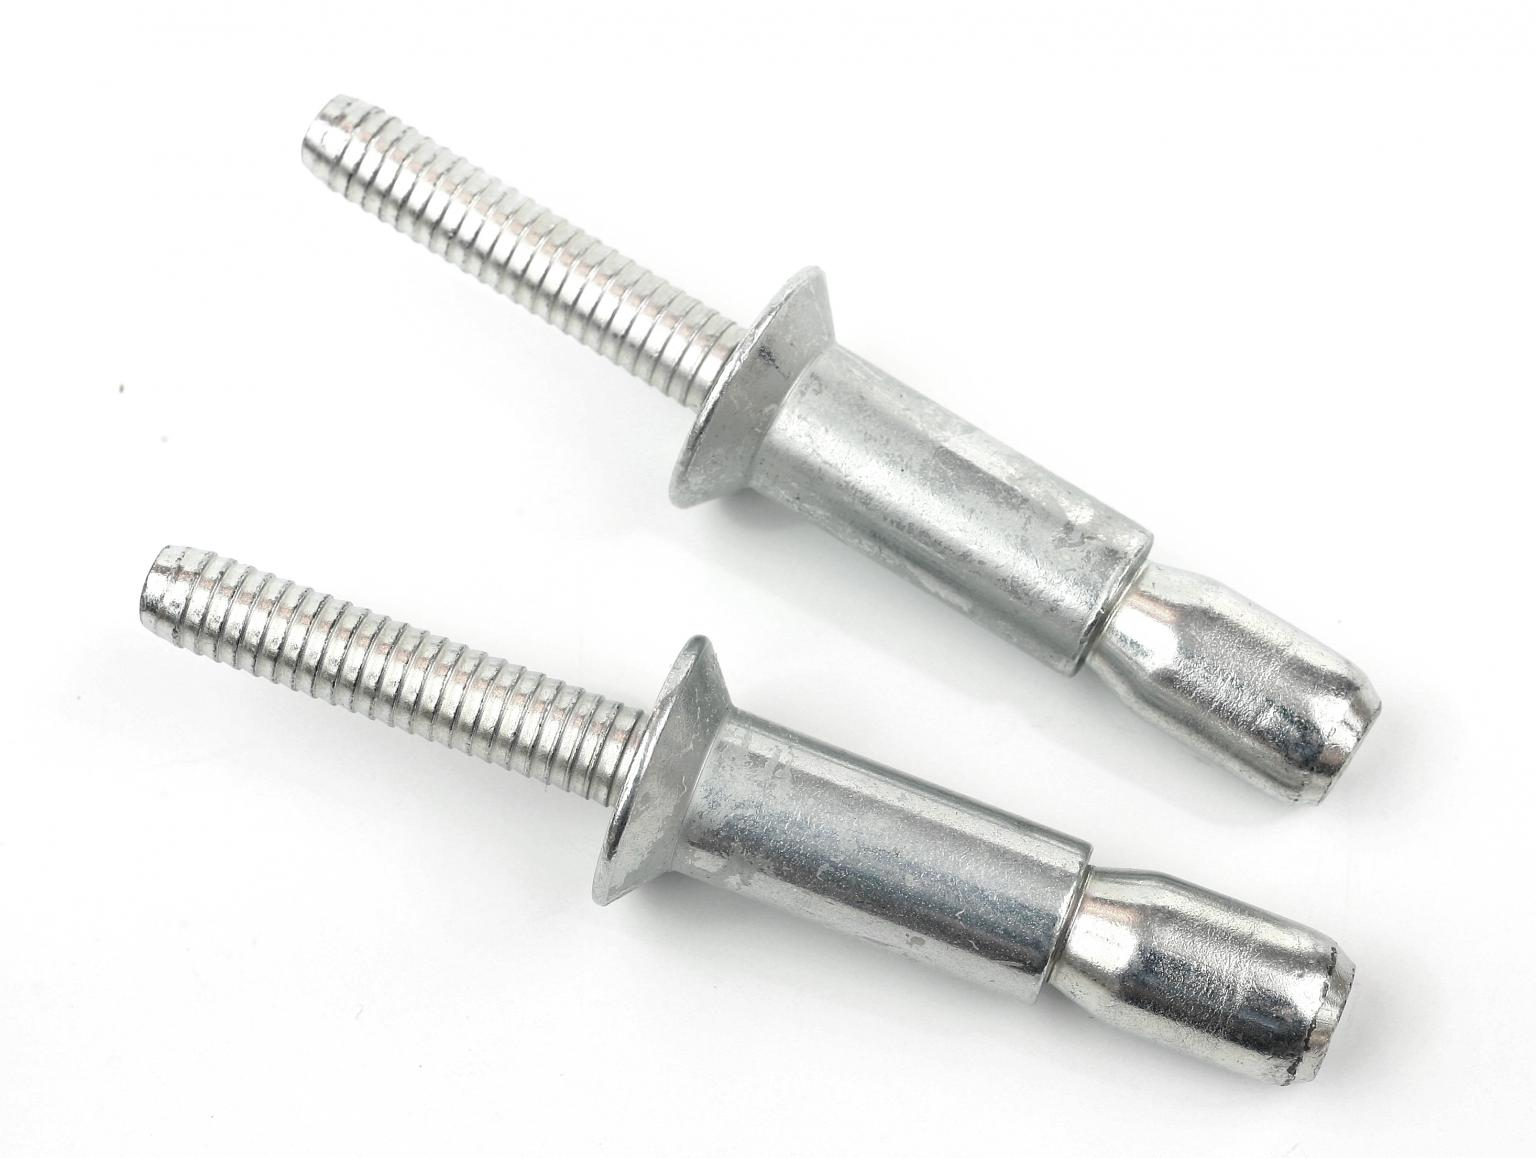 The new 12.7mm Magna-Lok fastener is the strongest of its type